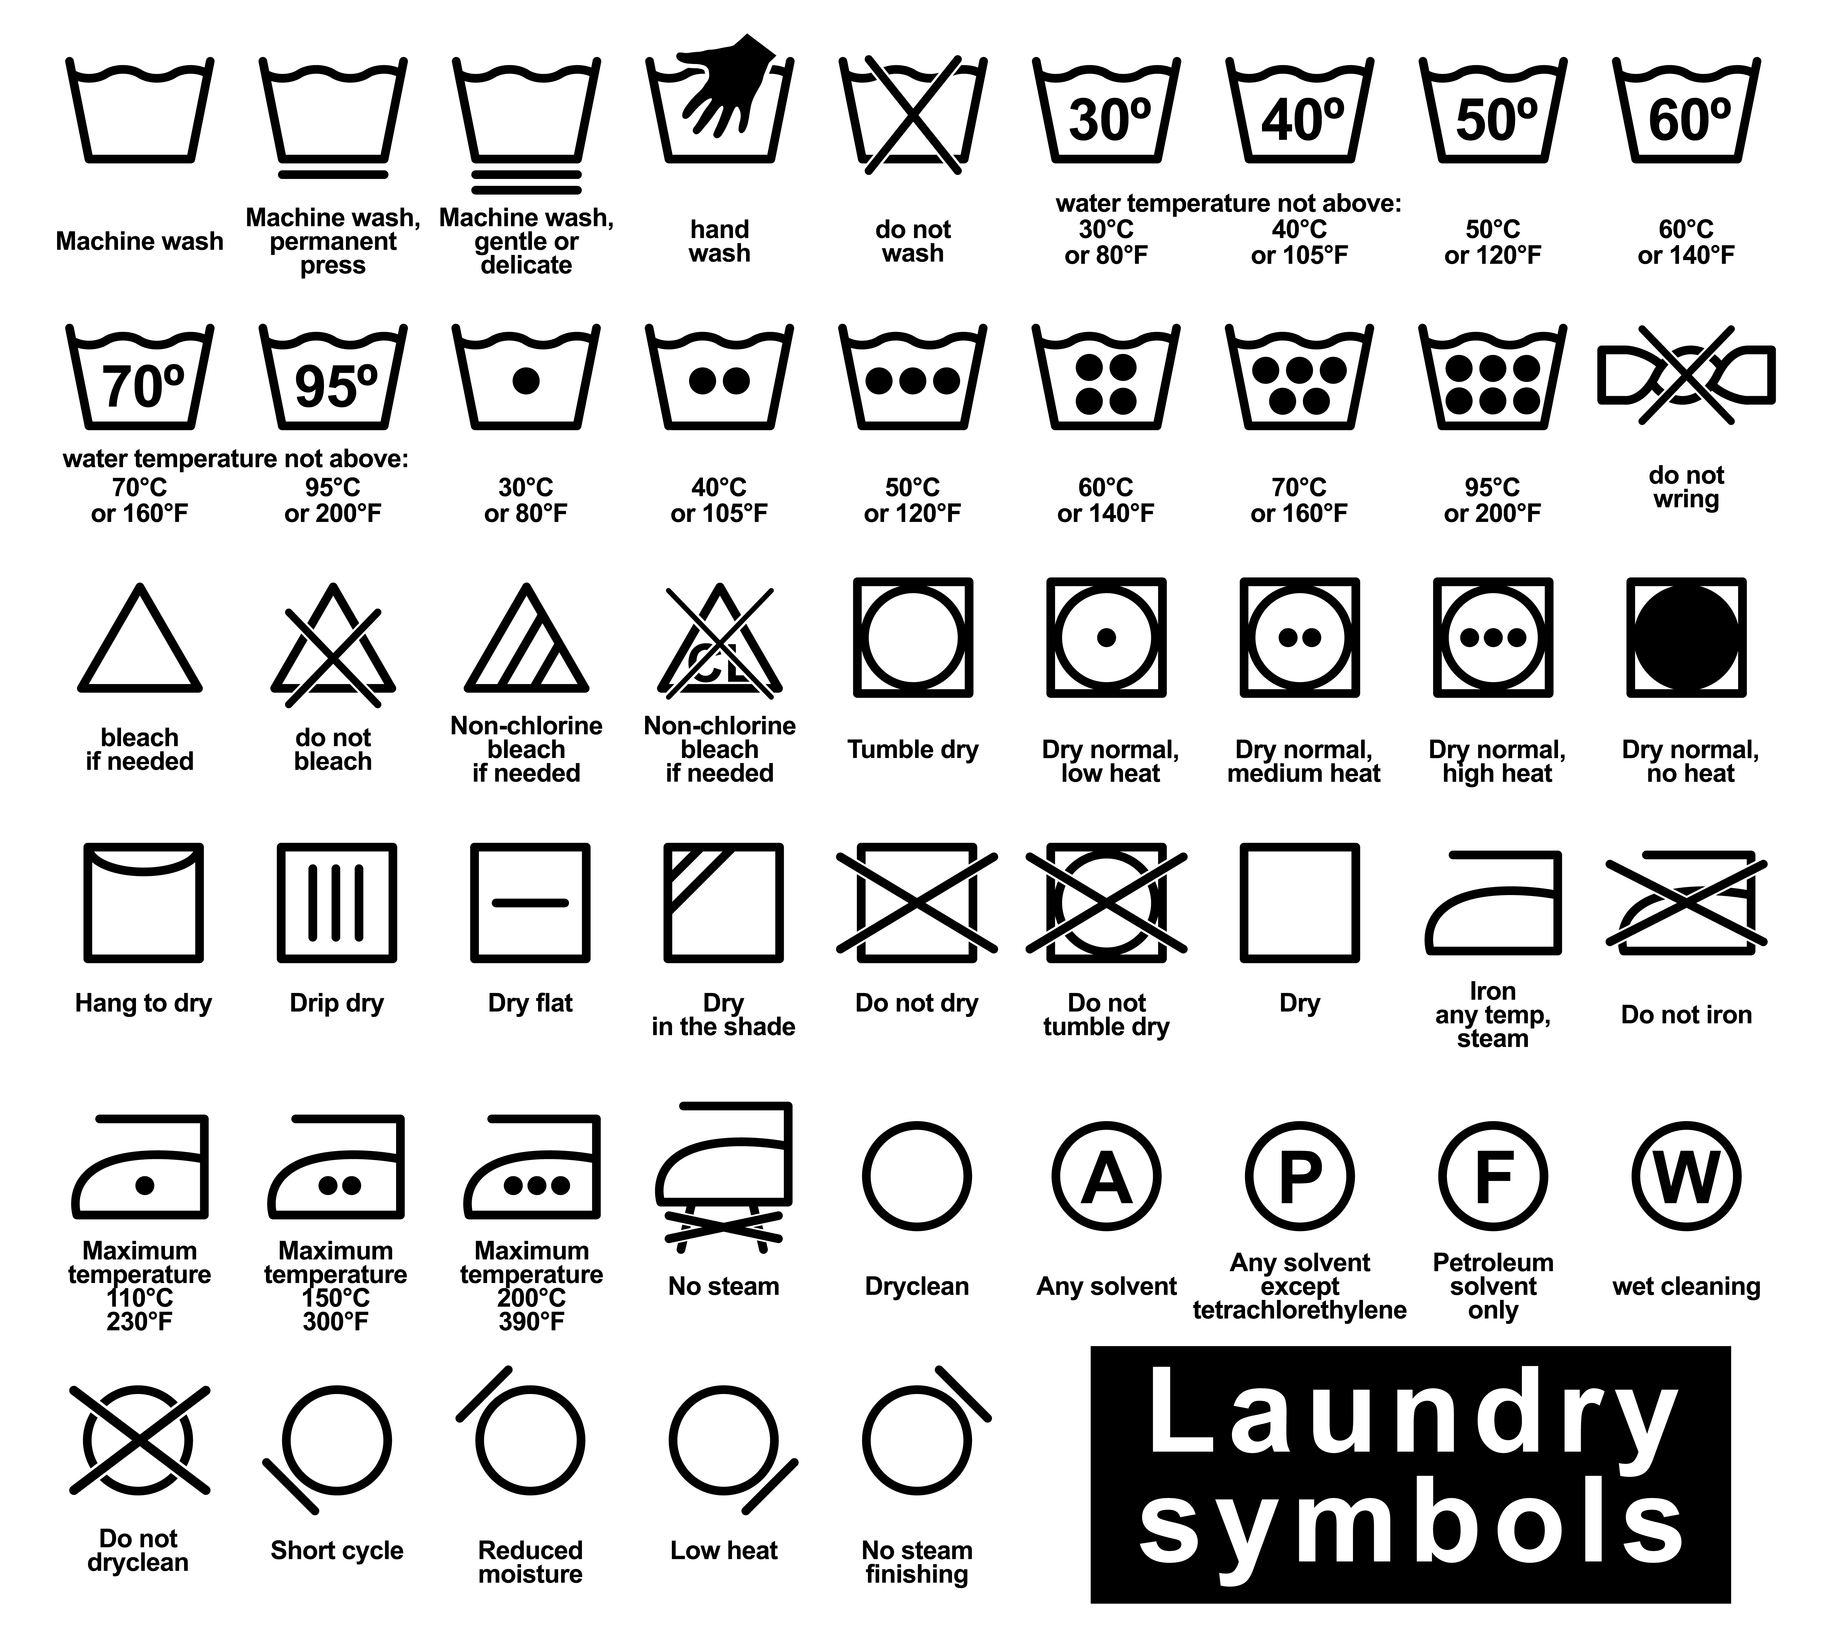 Wash Symbol: Depicted as a bucket filled with water, the Wash Symbol tells you what temperature or machine setting you should use to wash the item of clothing. Temperature indication: Inside the 'Normal Wash' symbol, there will either be a temperature value or 1 to 6 dots that signifying temperature ranges.